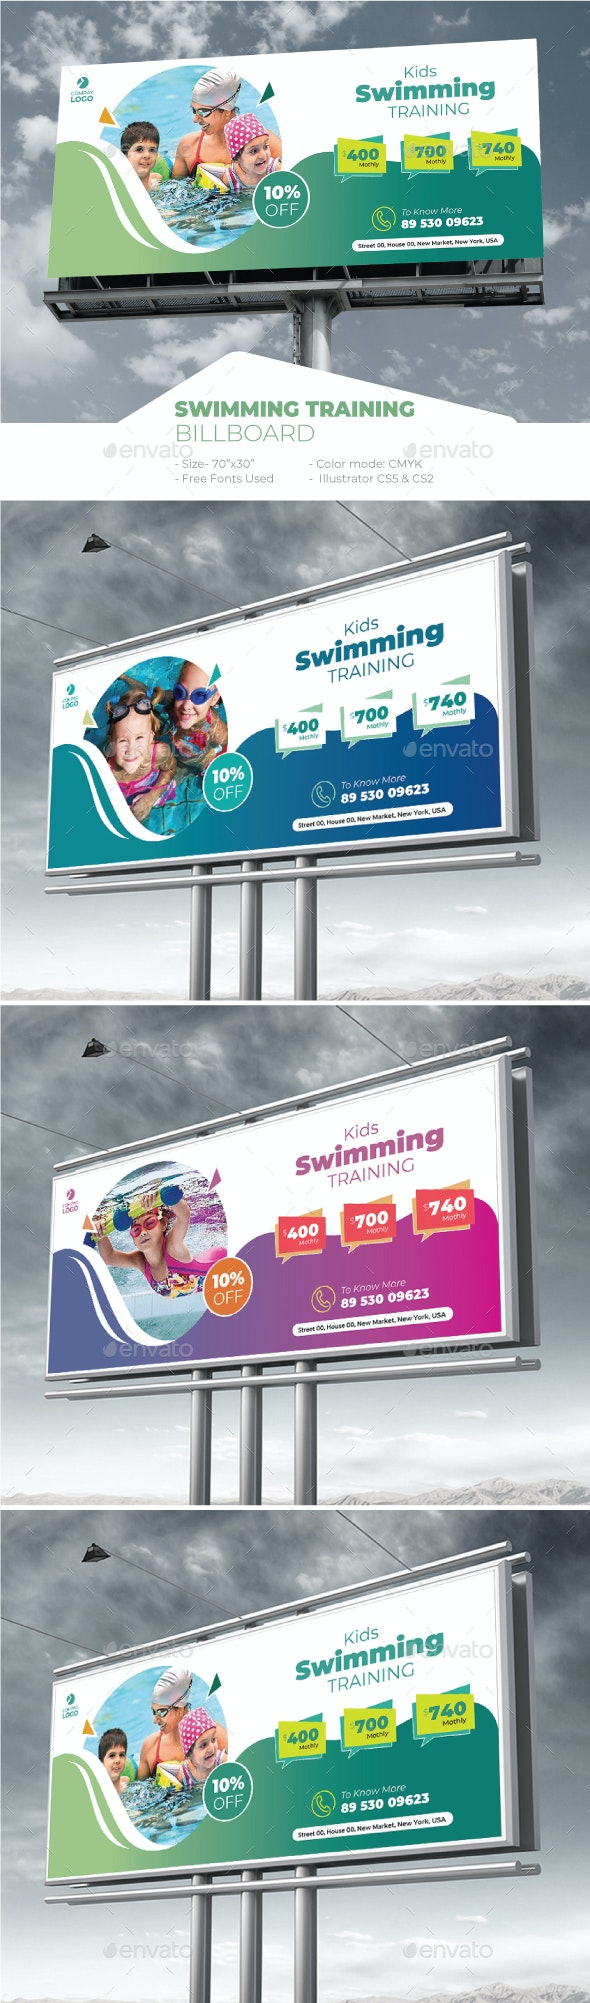 Kids Swimming Training Billboard - Signage Print Templates